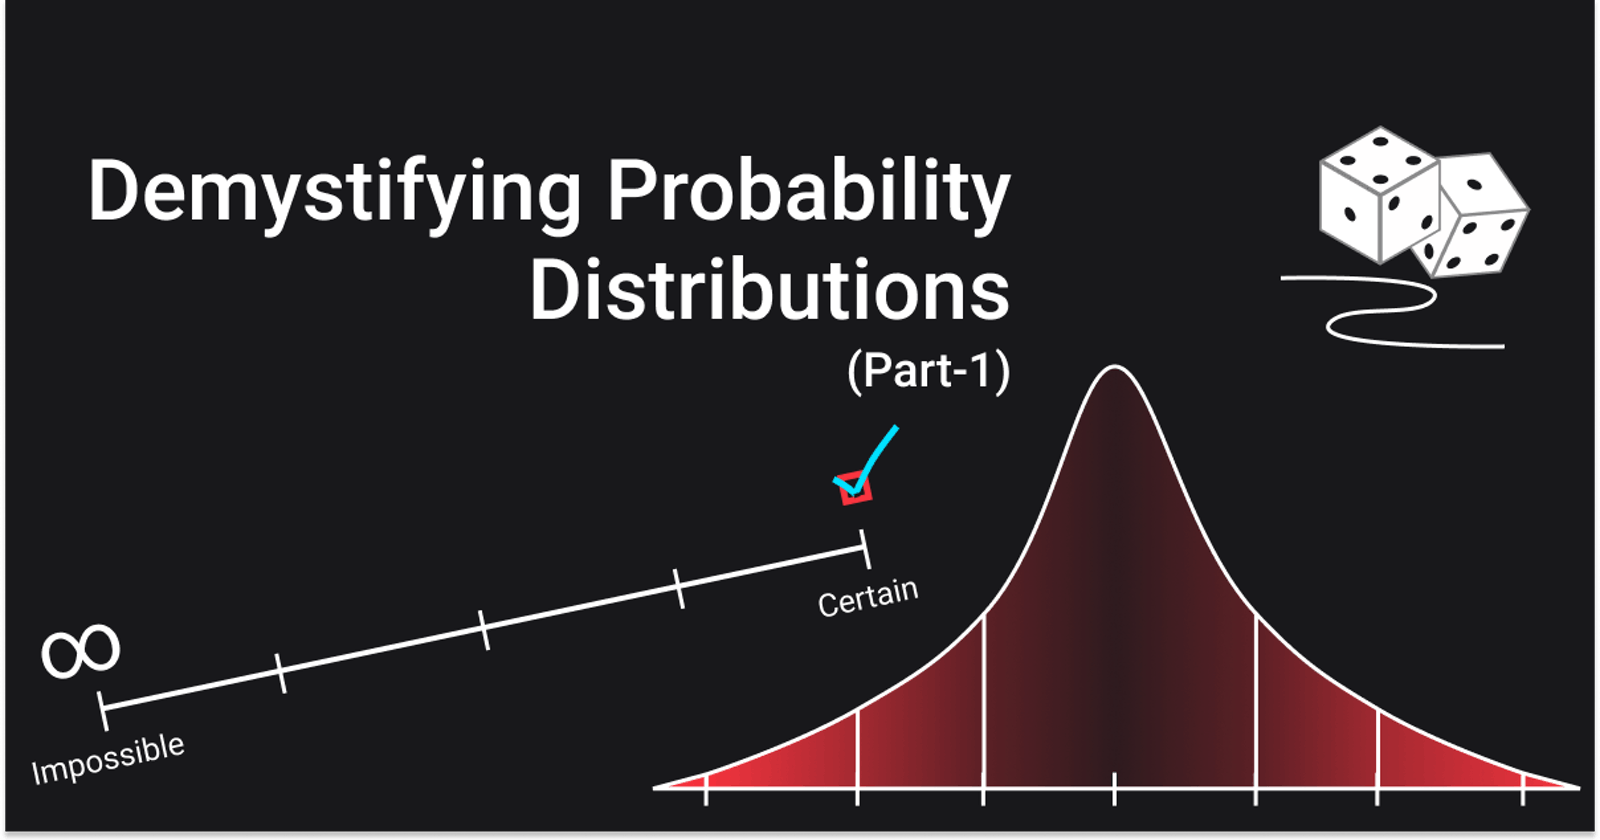 Demystifying Probability Distributions(Part - 1)